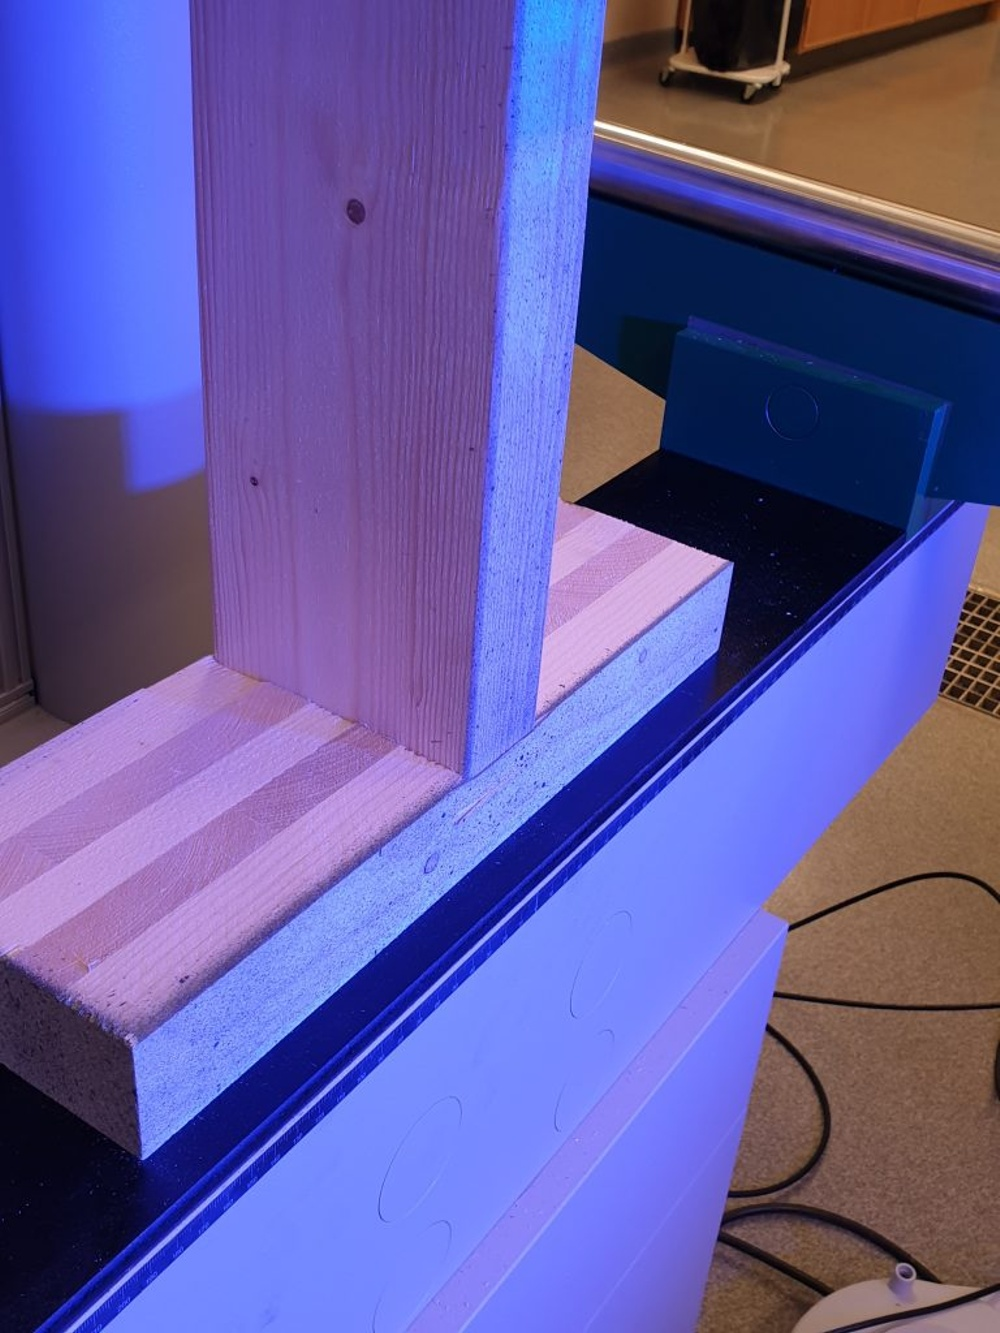 A board made of CLT can withstand four times the load of a regular wooden board.